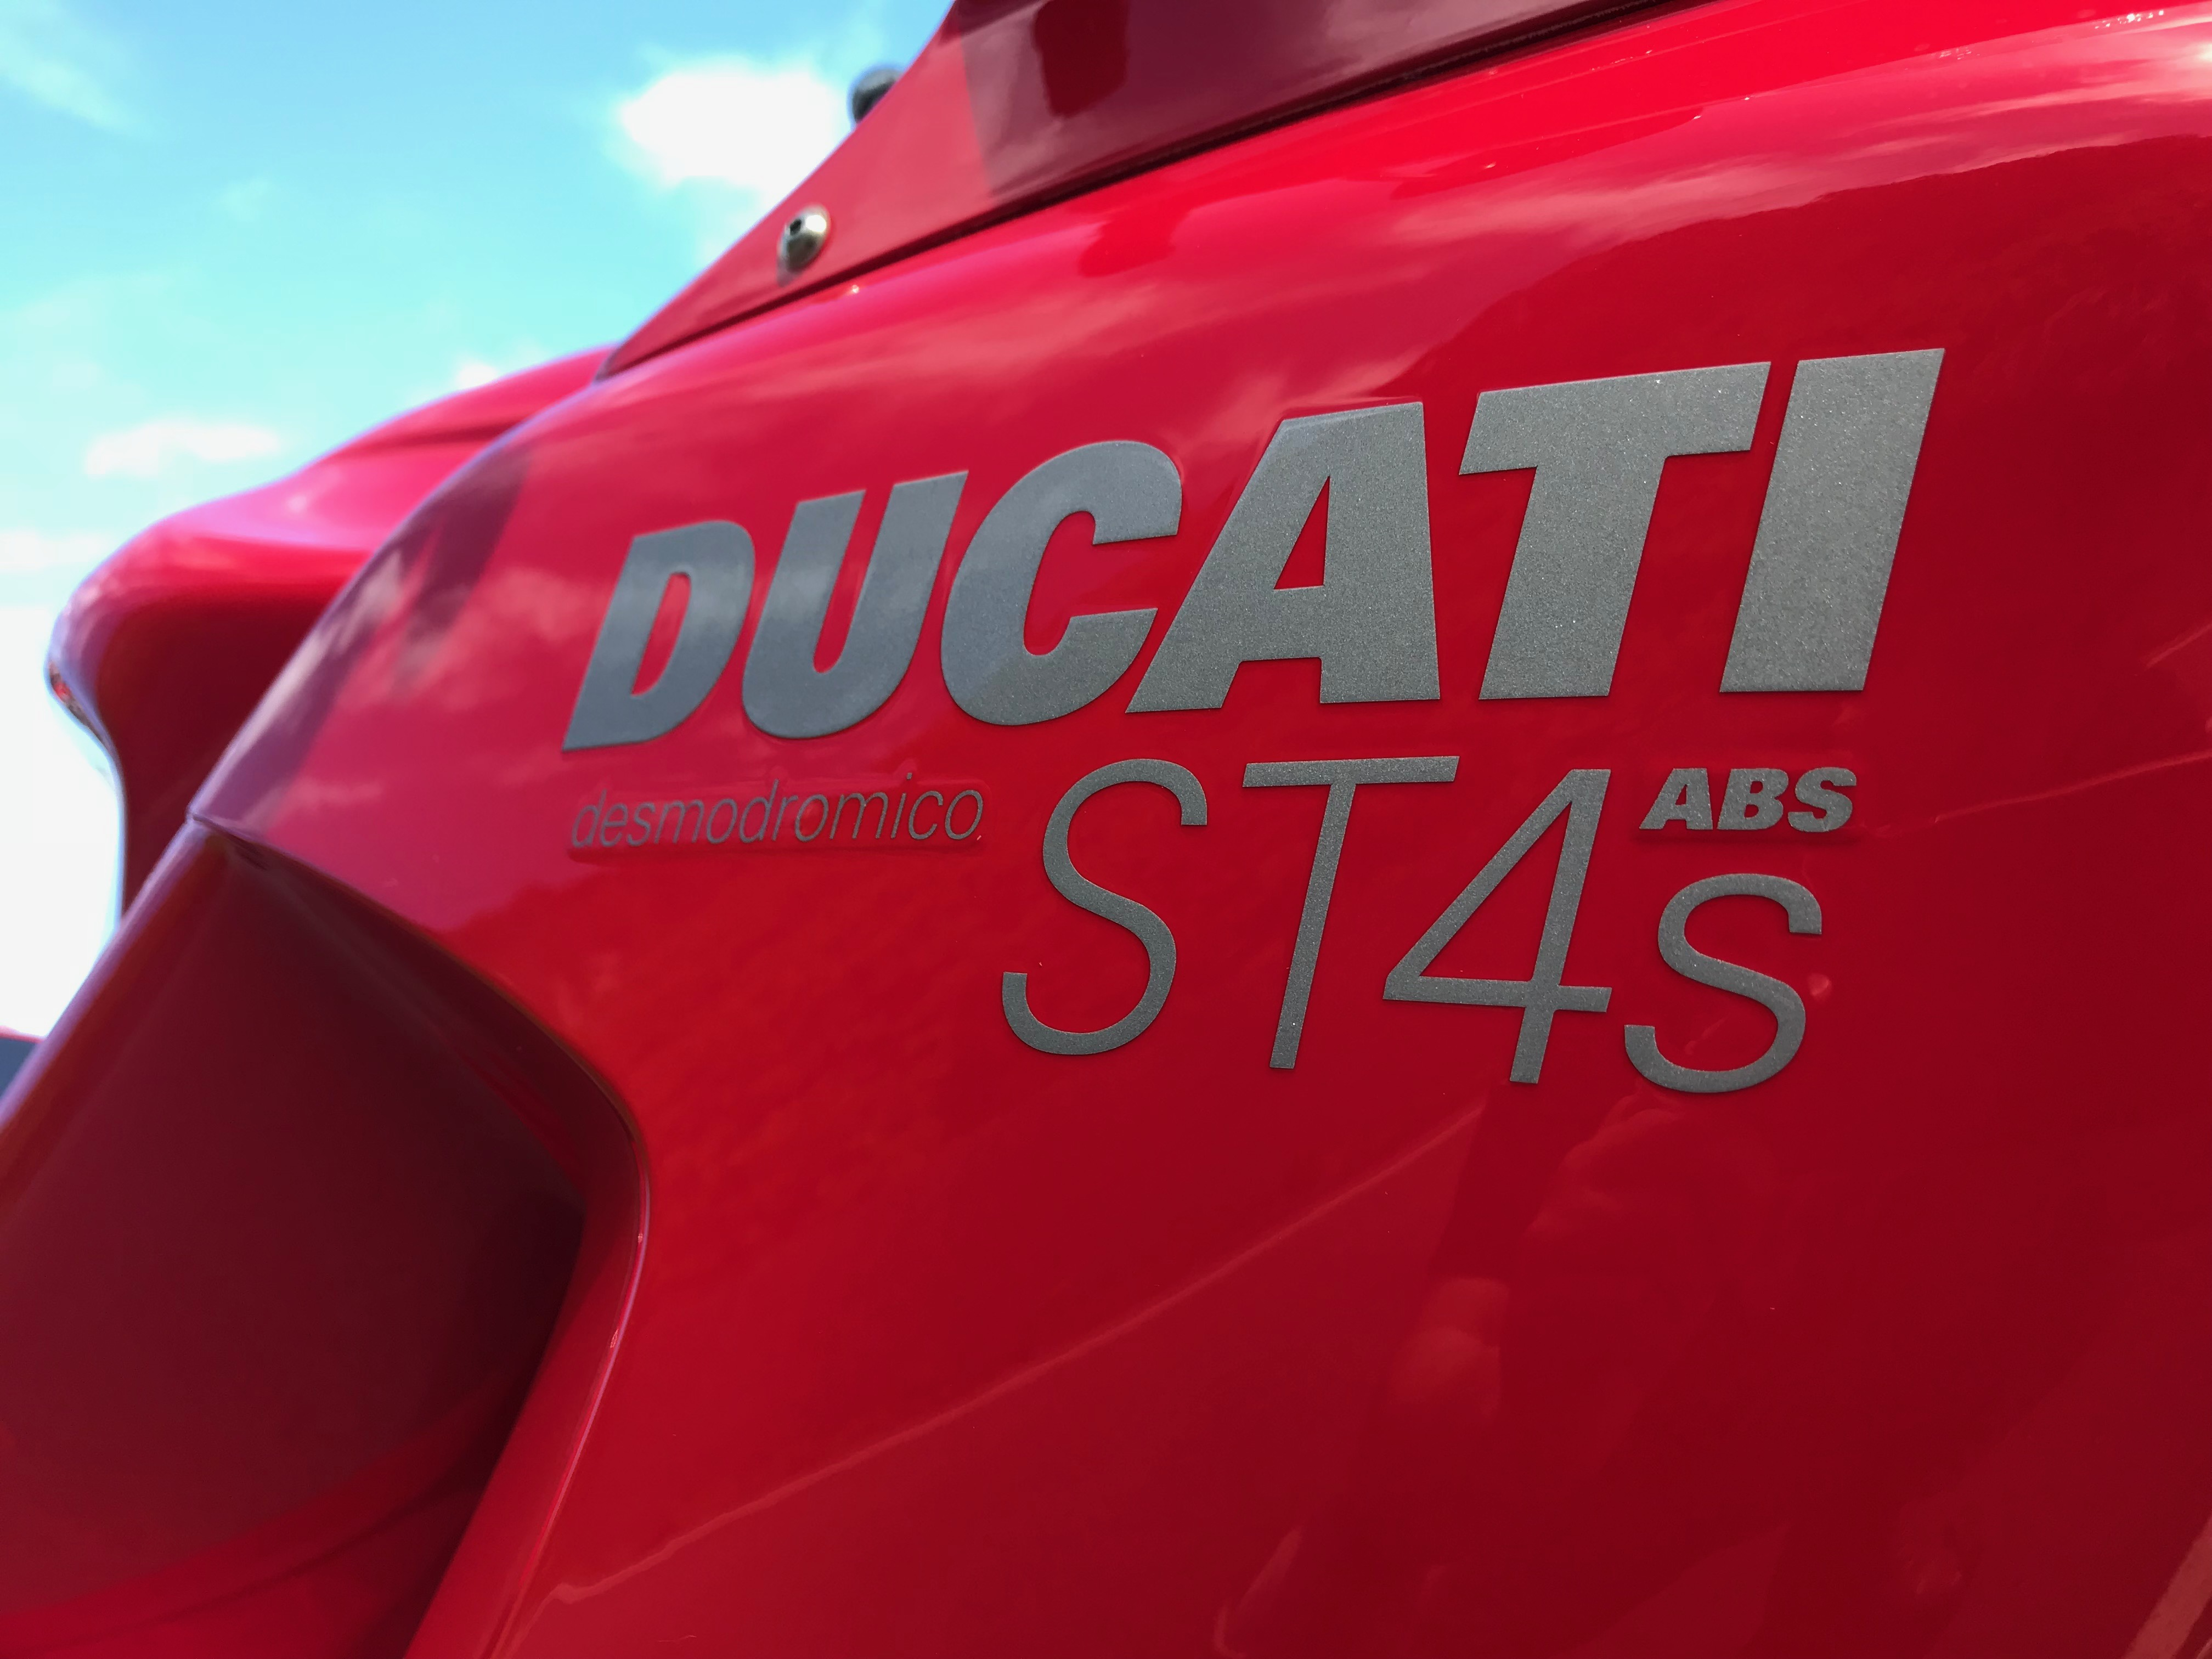 DUCATI ST4S ABS カウル